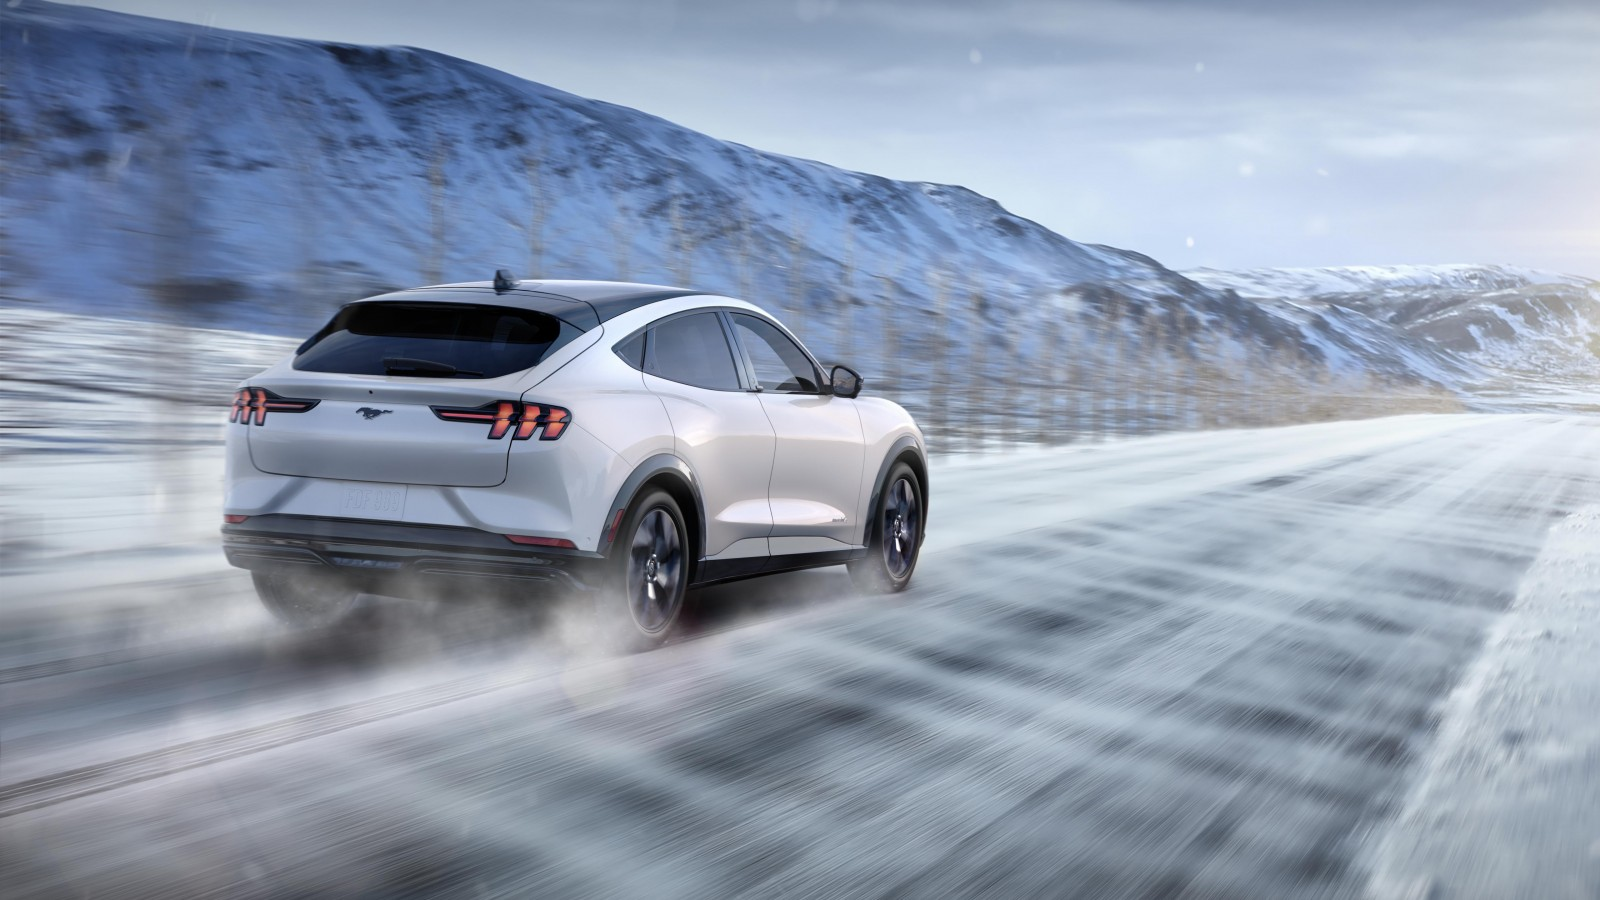 2021 ford mustang mach